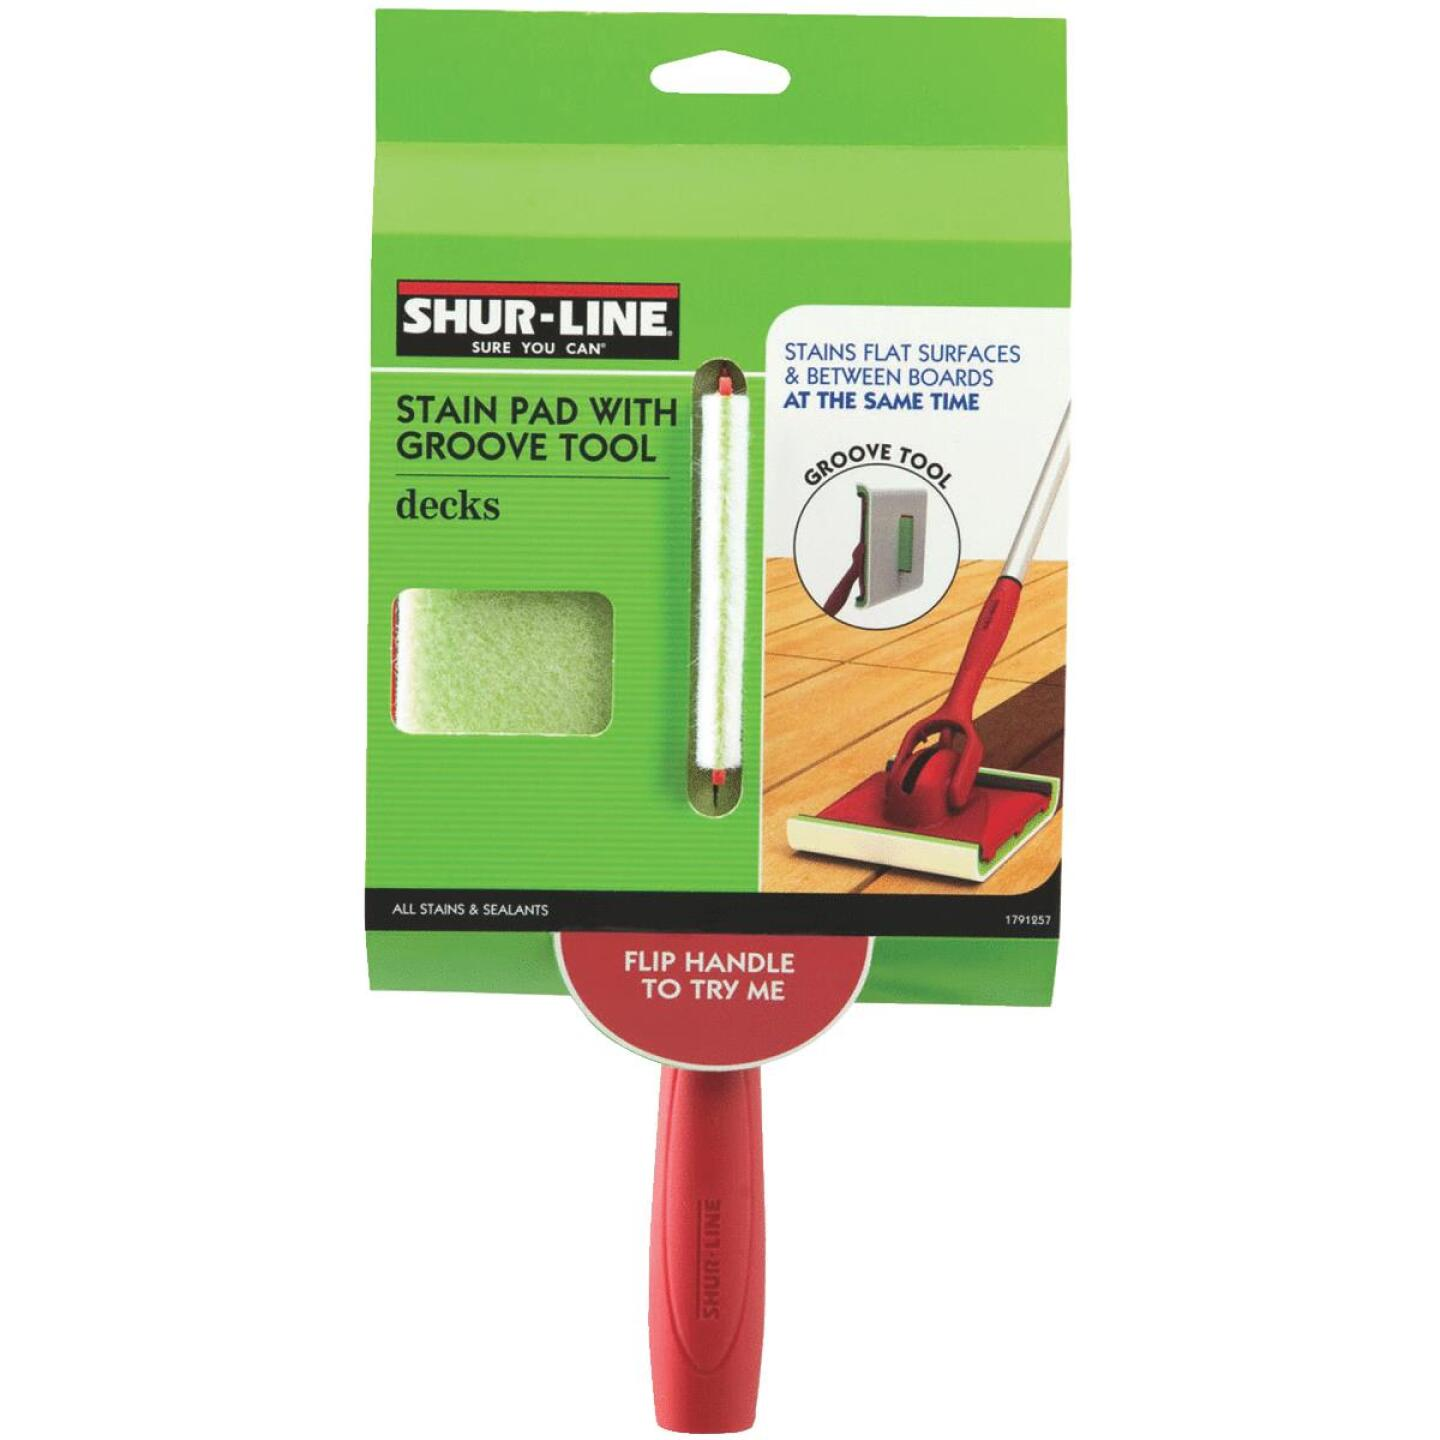 Shur-line 3 In. x 6 In. Deck Pad Painter with Groove Tool Image 1